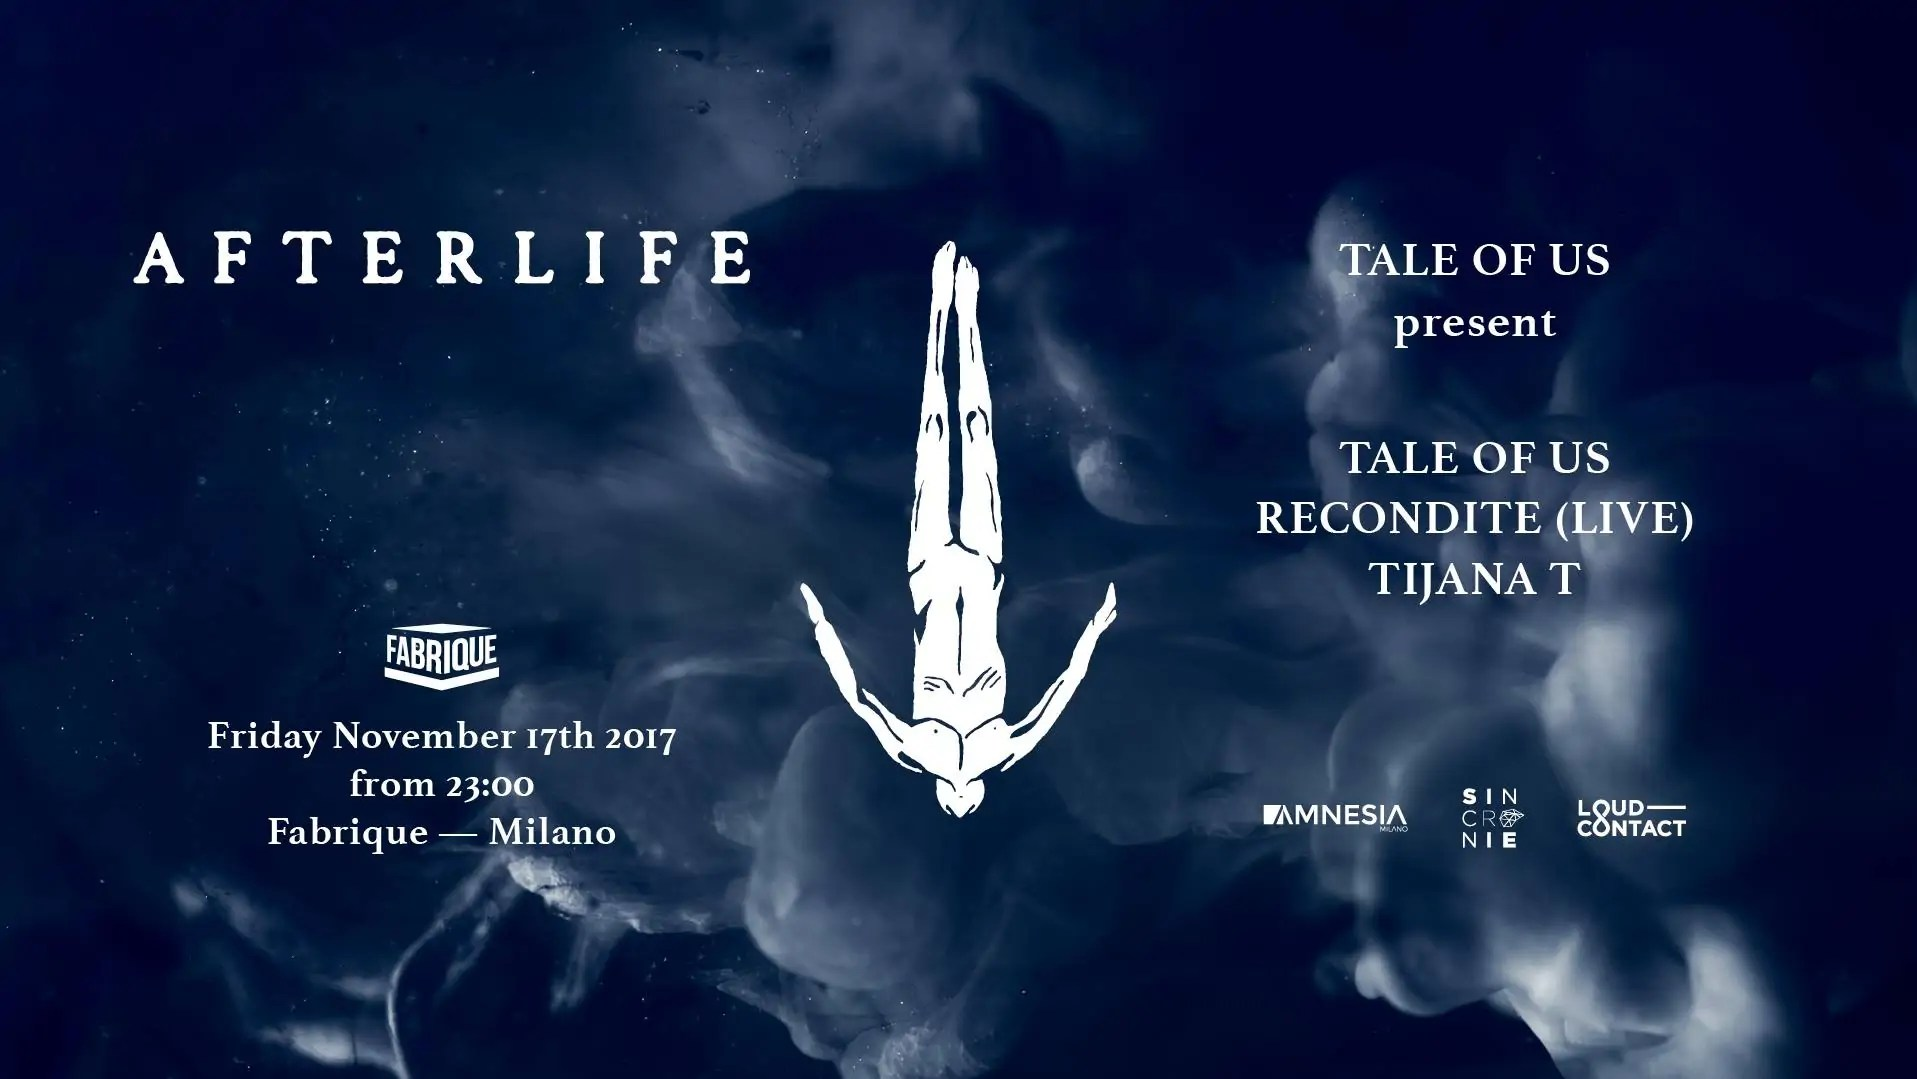 Afterlife Fabrique Milano 17 11 2017